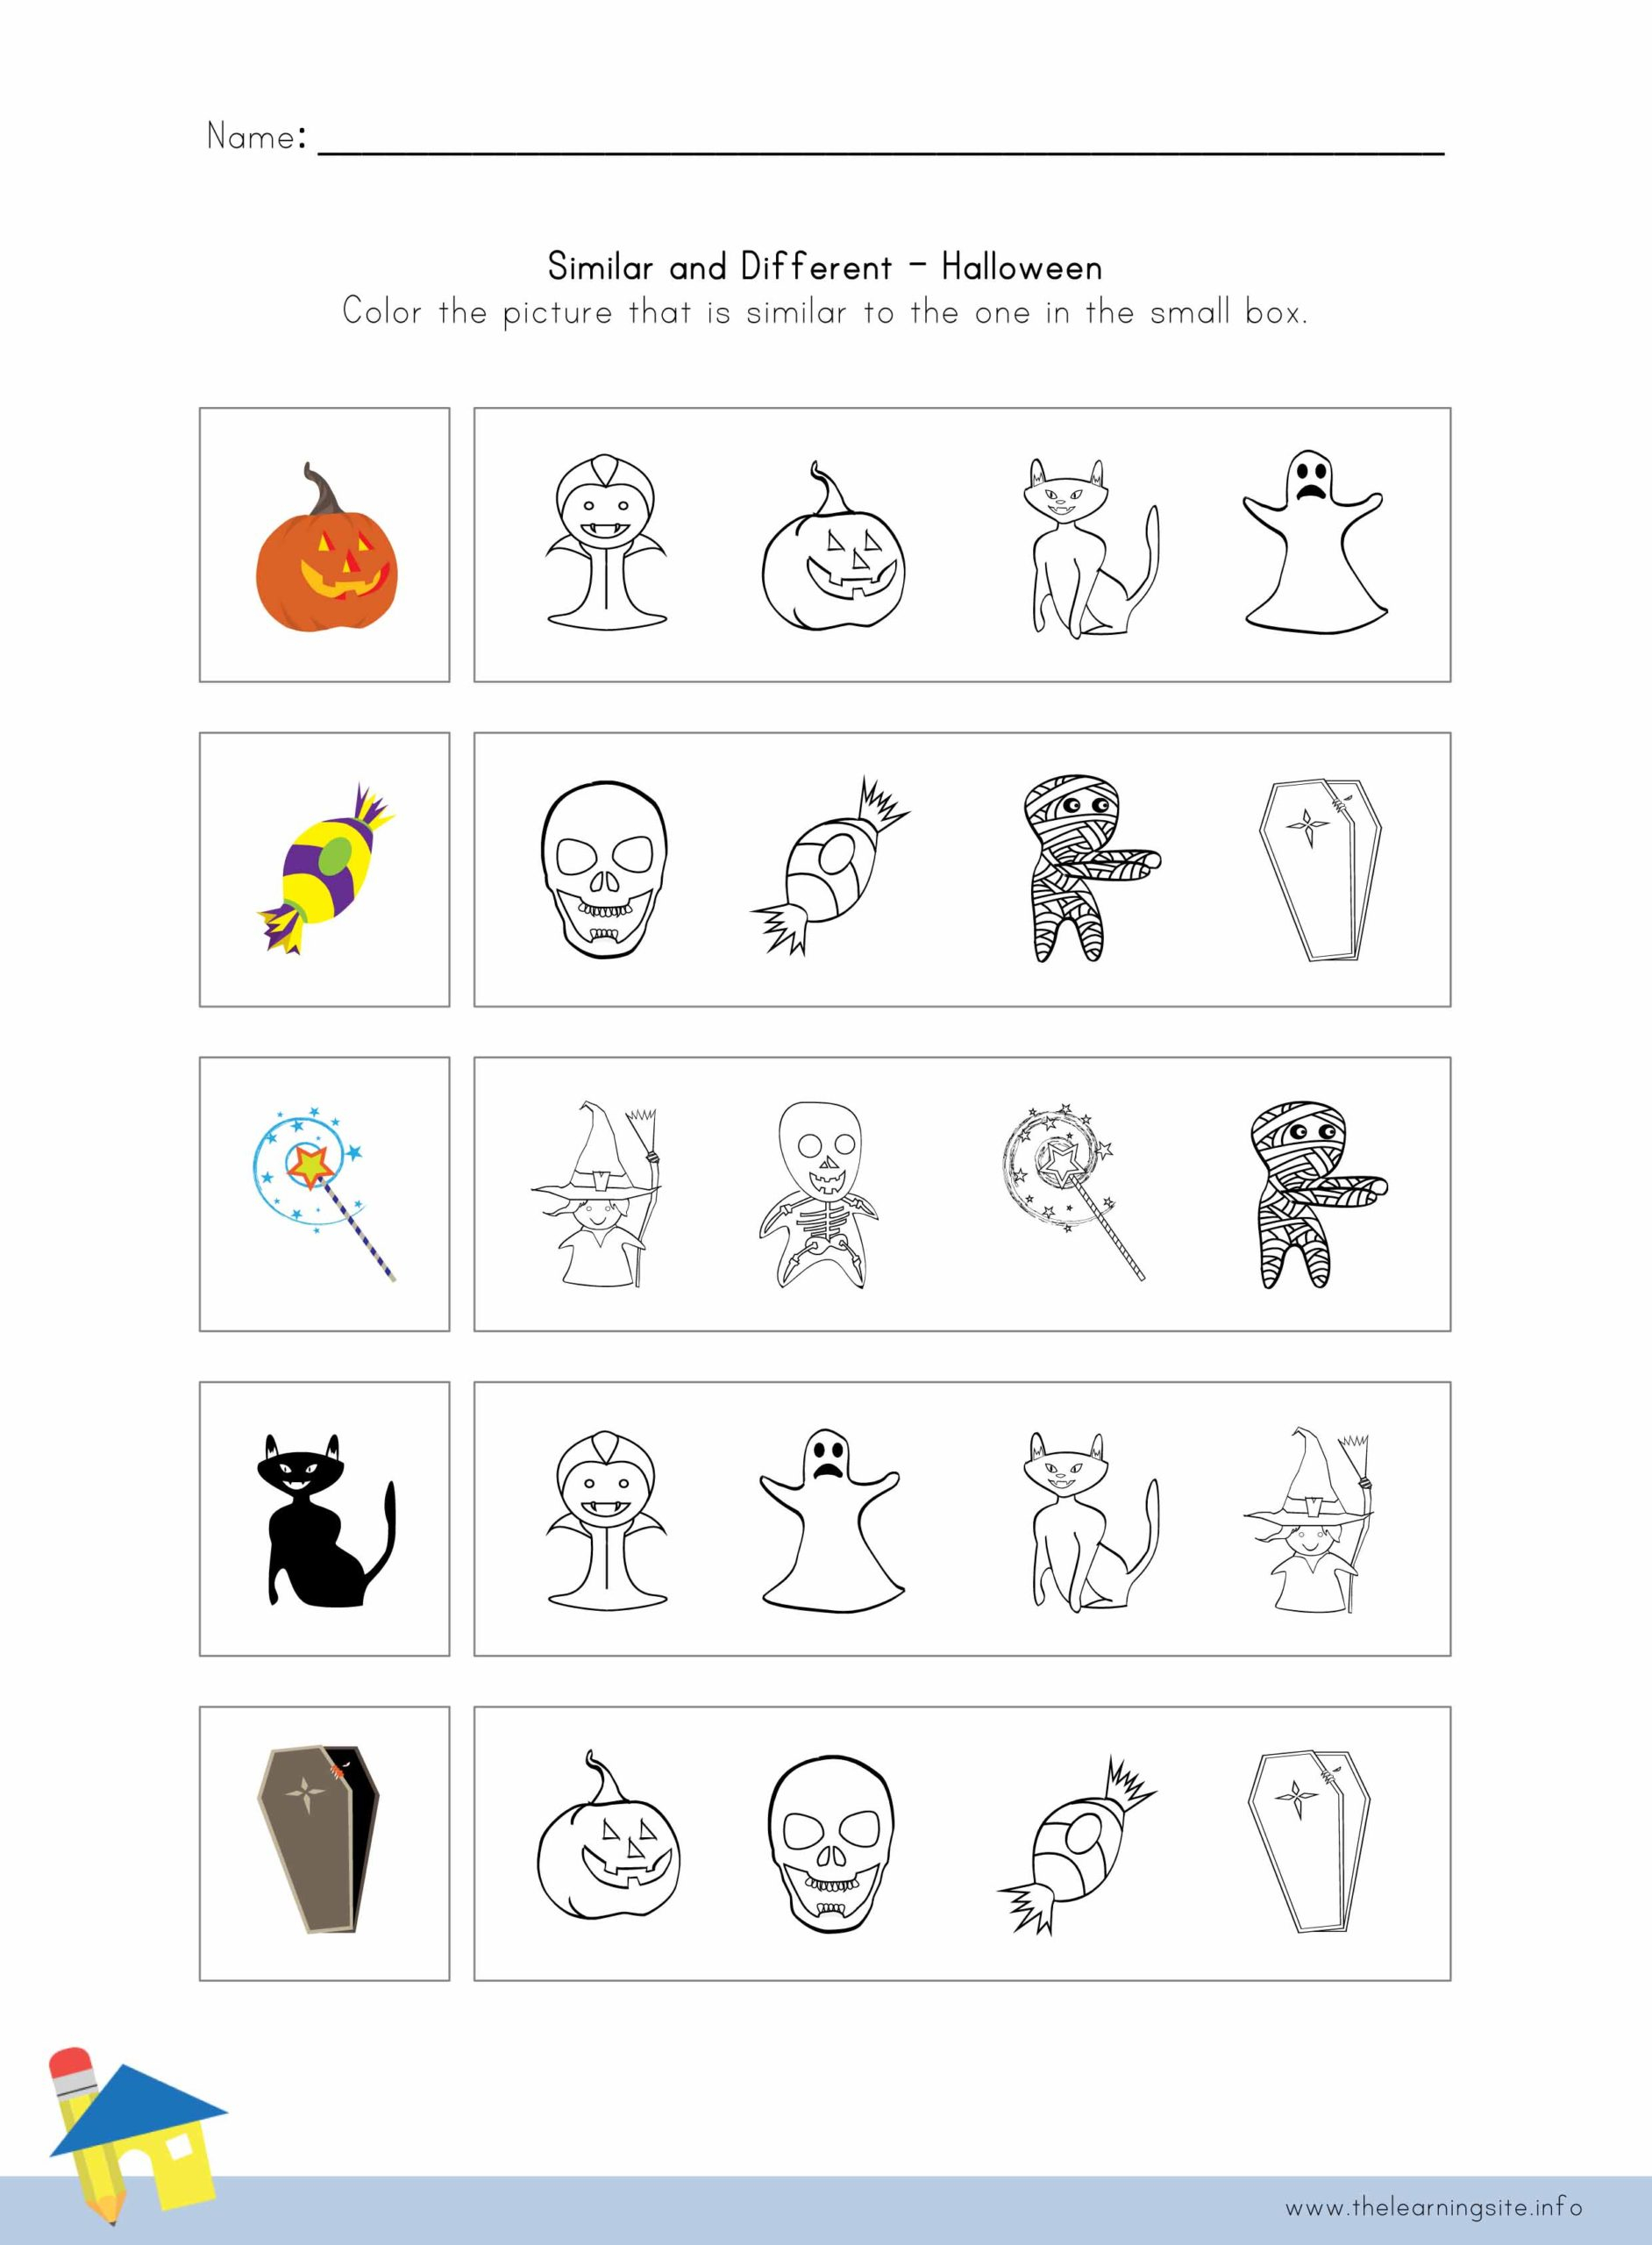 Halloween Similar And Different Worksheet 4 – The Learning Site